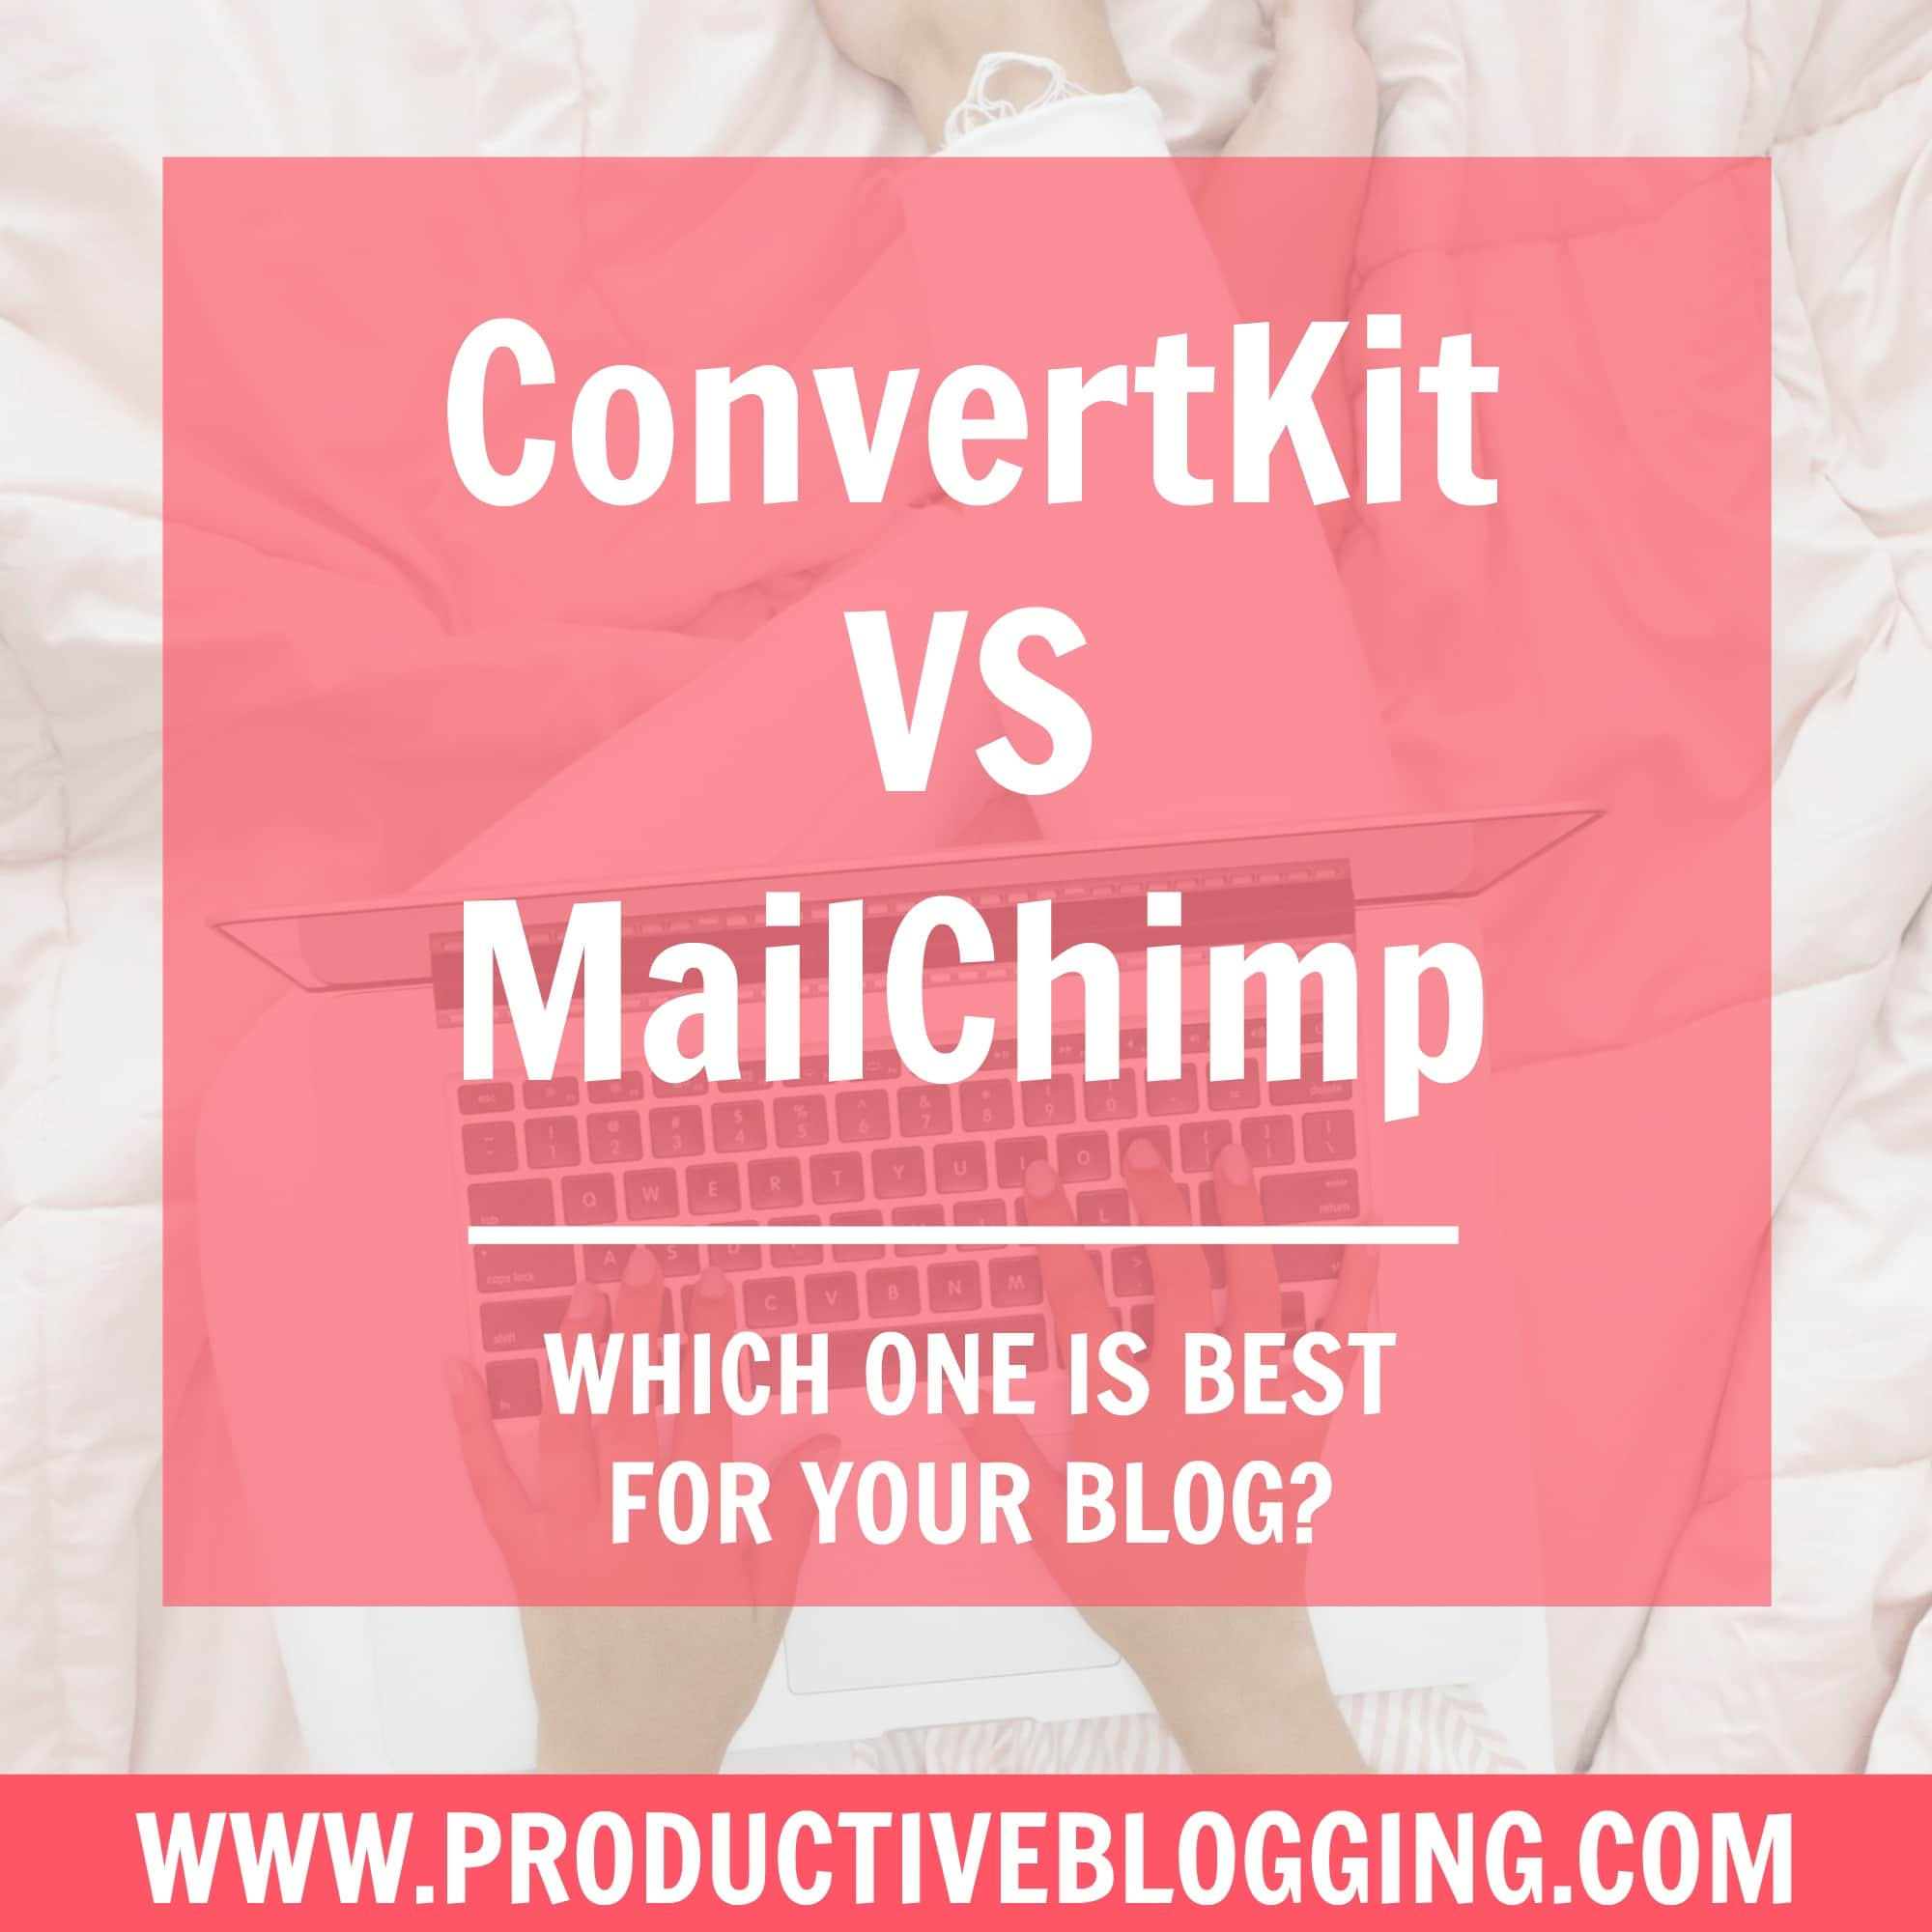 ConvertKit vs MailChimp – which is best for your blog?